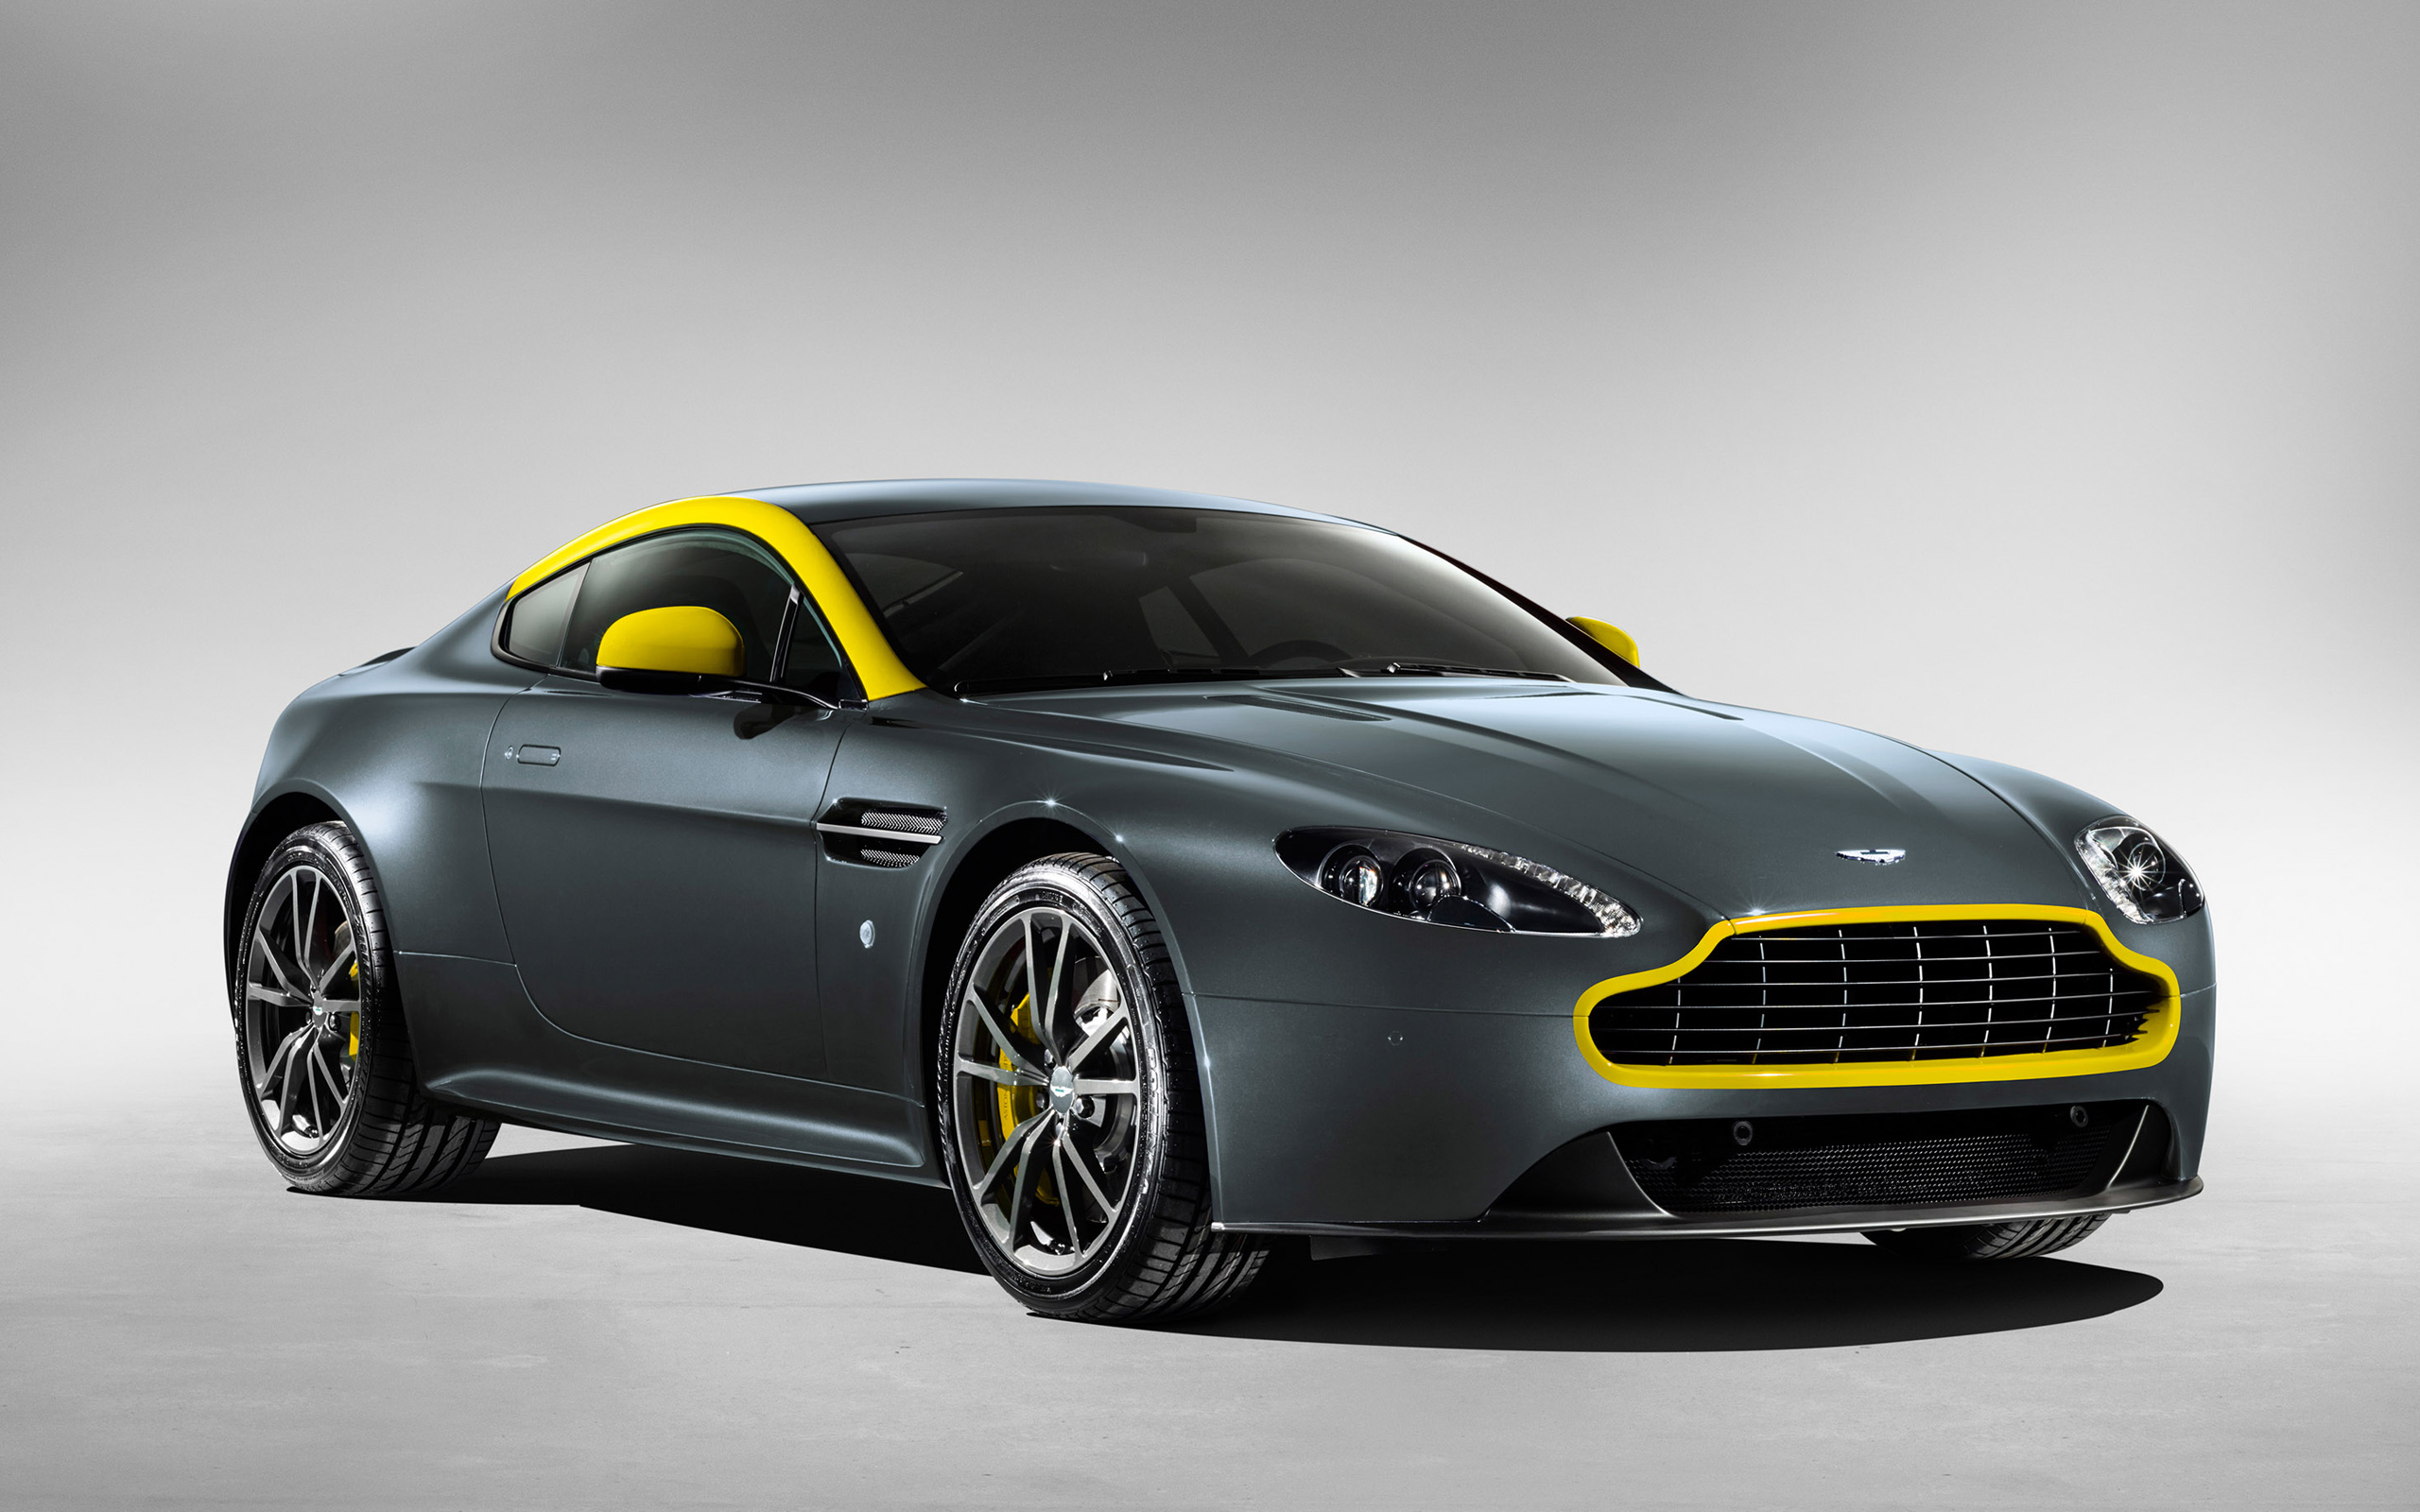 aston martin v8 vantage n430 2014 wallpaper hd car wallpapers id 4212. Black Bedroom Furniture Sets. Home Design Ideas